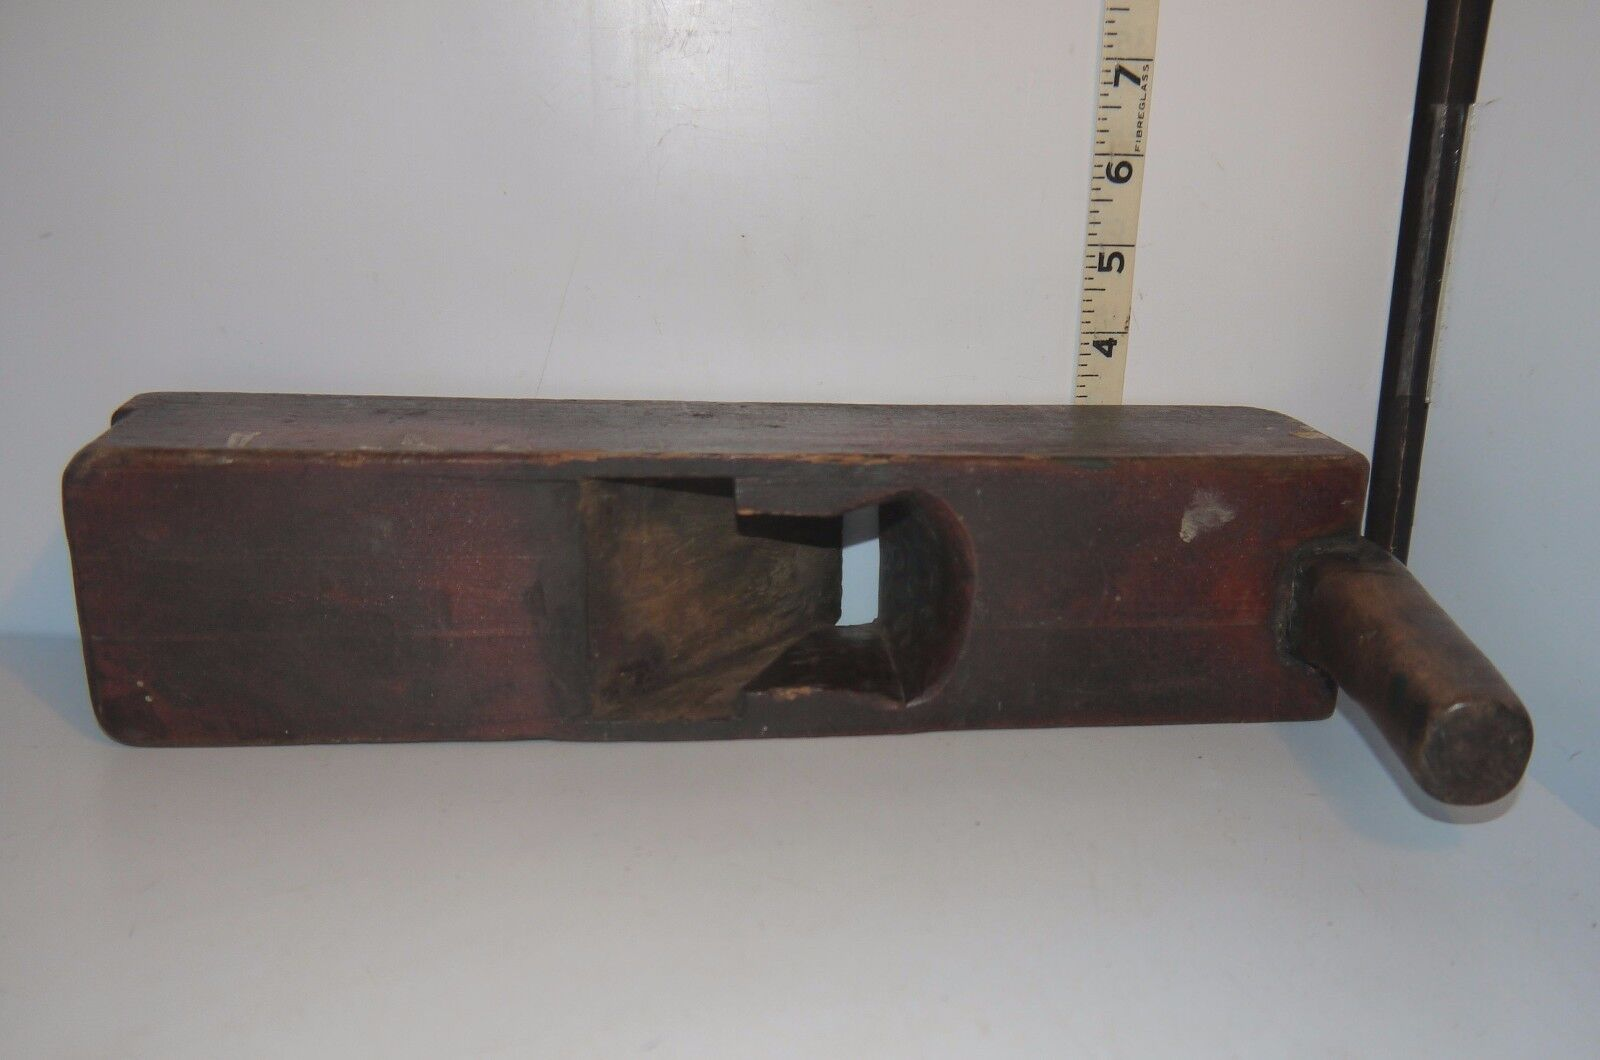 What Is That Old Fashioned Wood Smoothing Tool